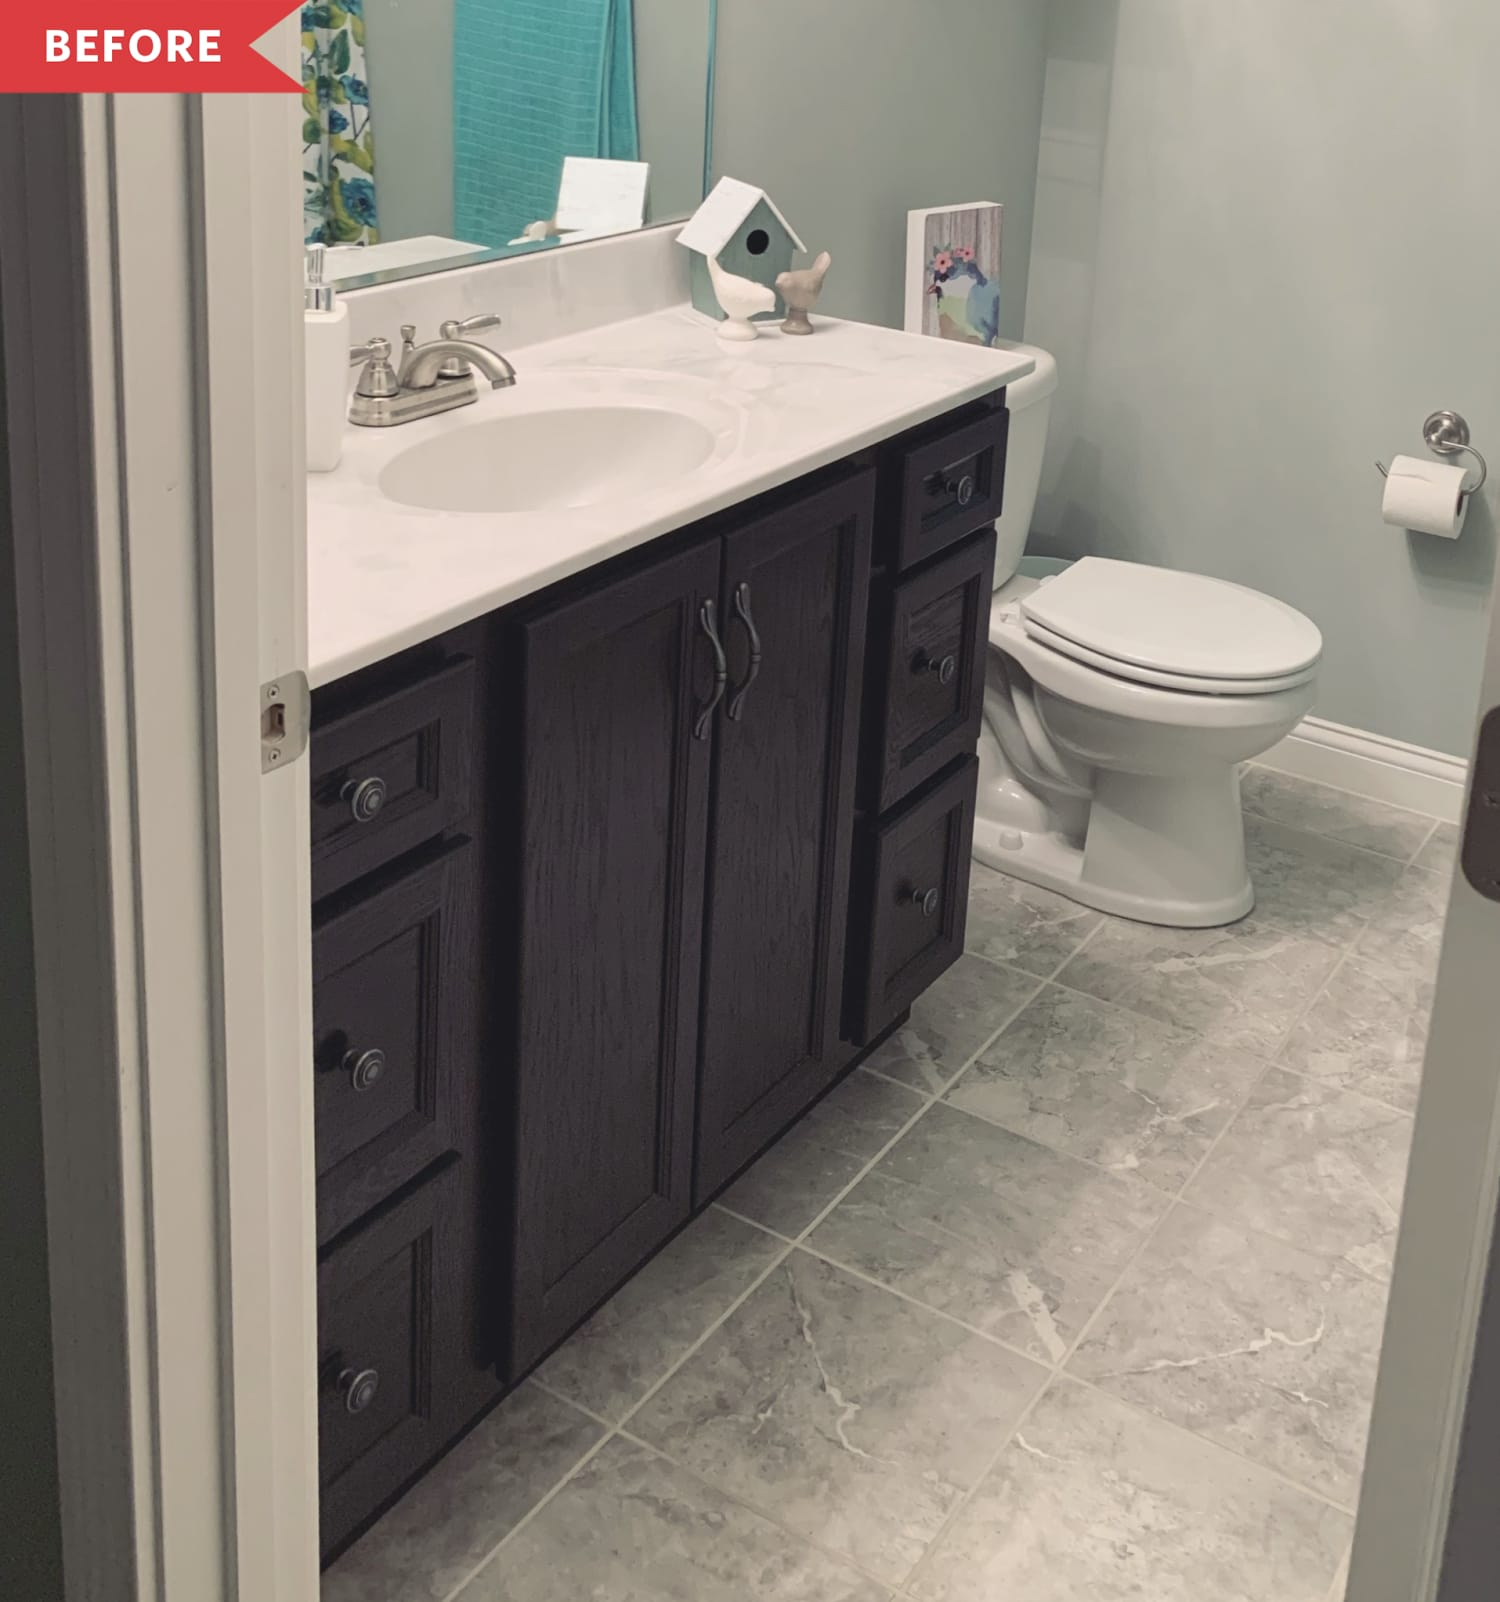 Before and After: This Funky $100 Bathroom Redo Uses Paint in Cool, Surprising Ways